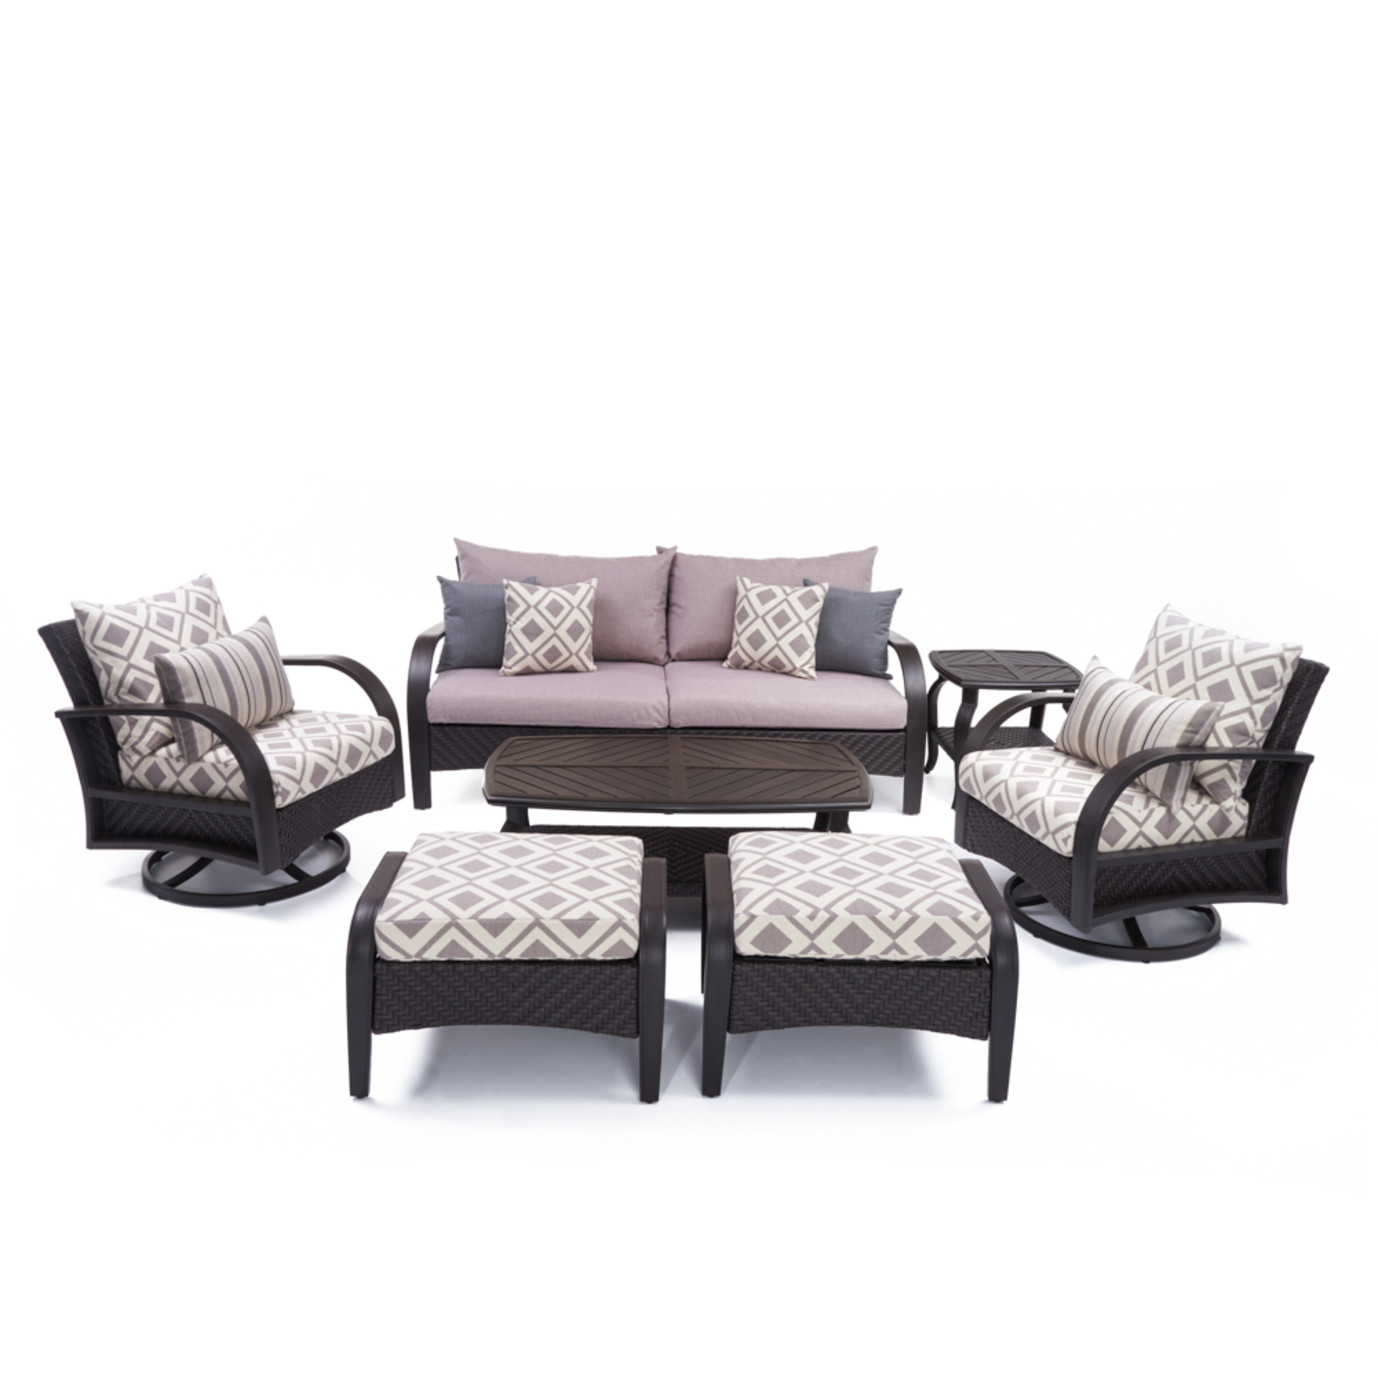 Barcelo™ 7 Piece Motion Club Deep Seating Set - Wisteria Lavender